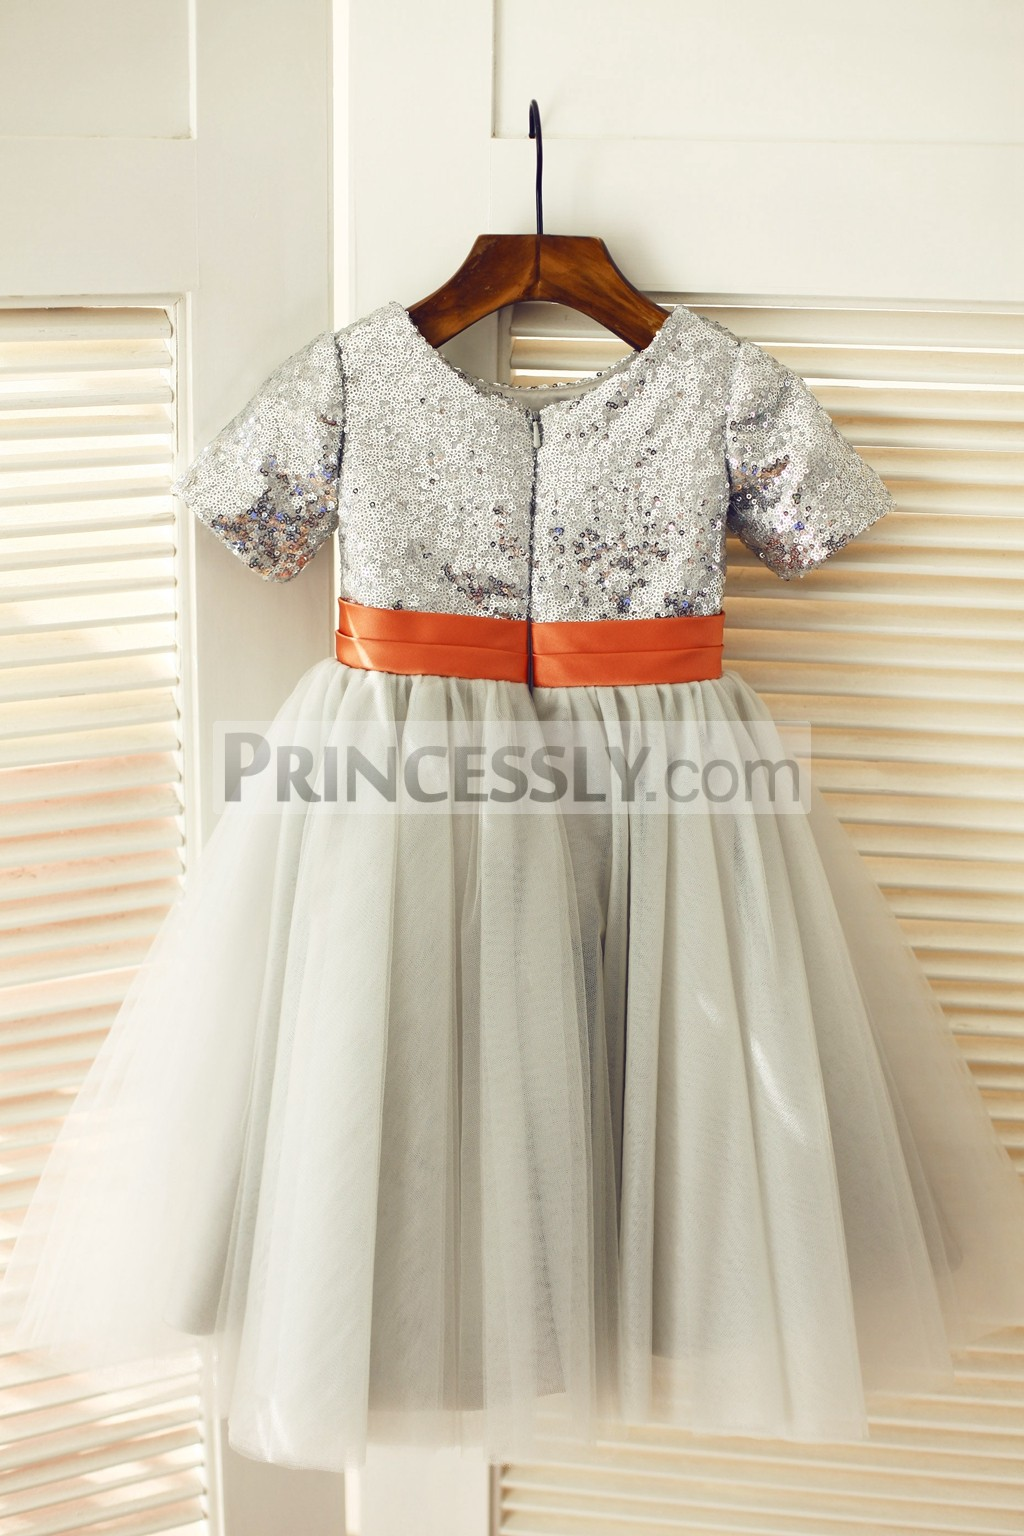 Silver sequins gray tulle wedding baby girl dress